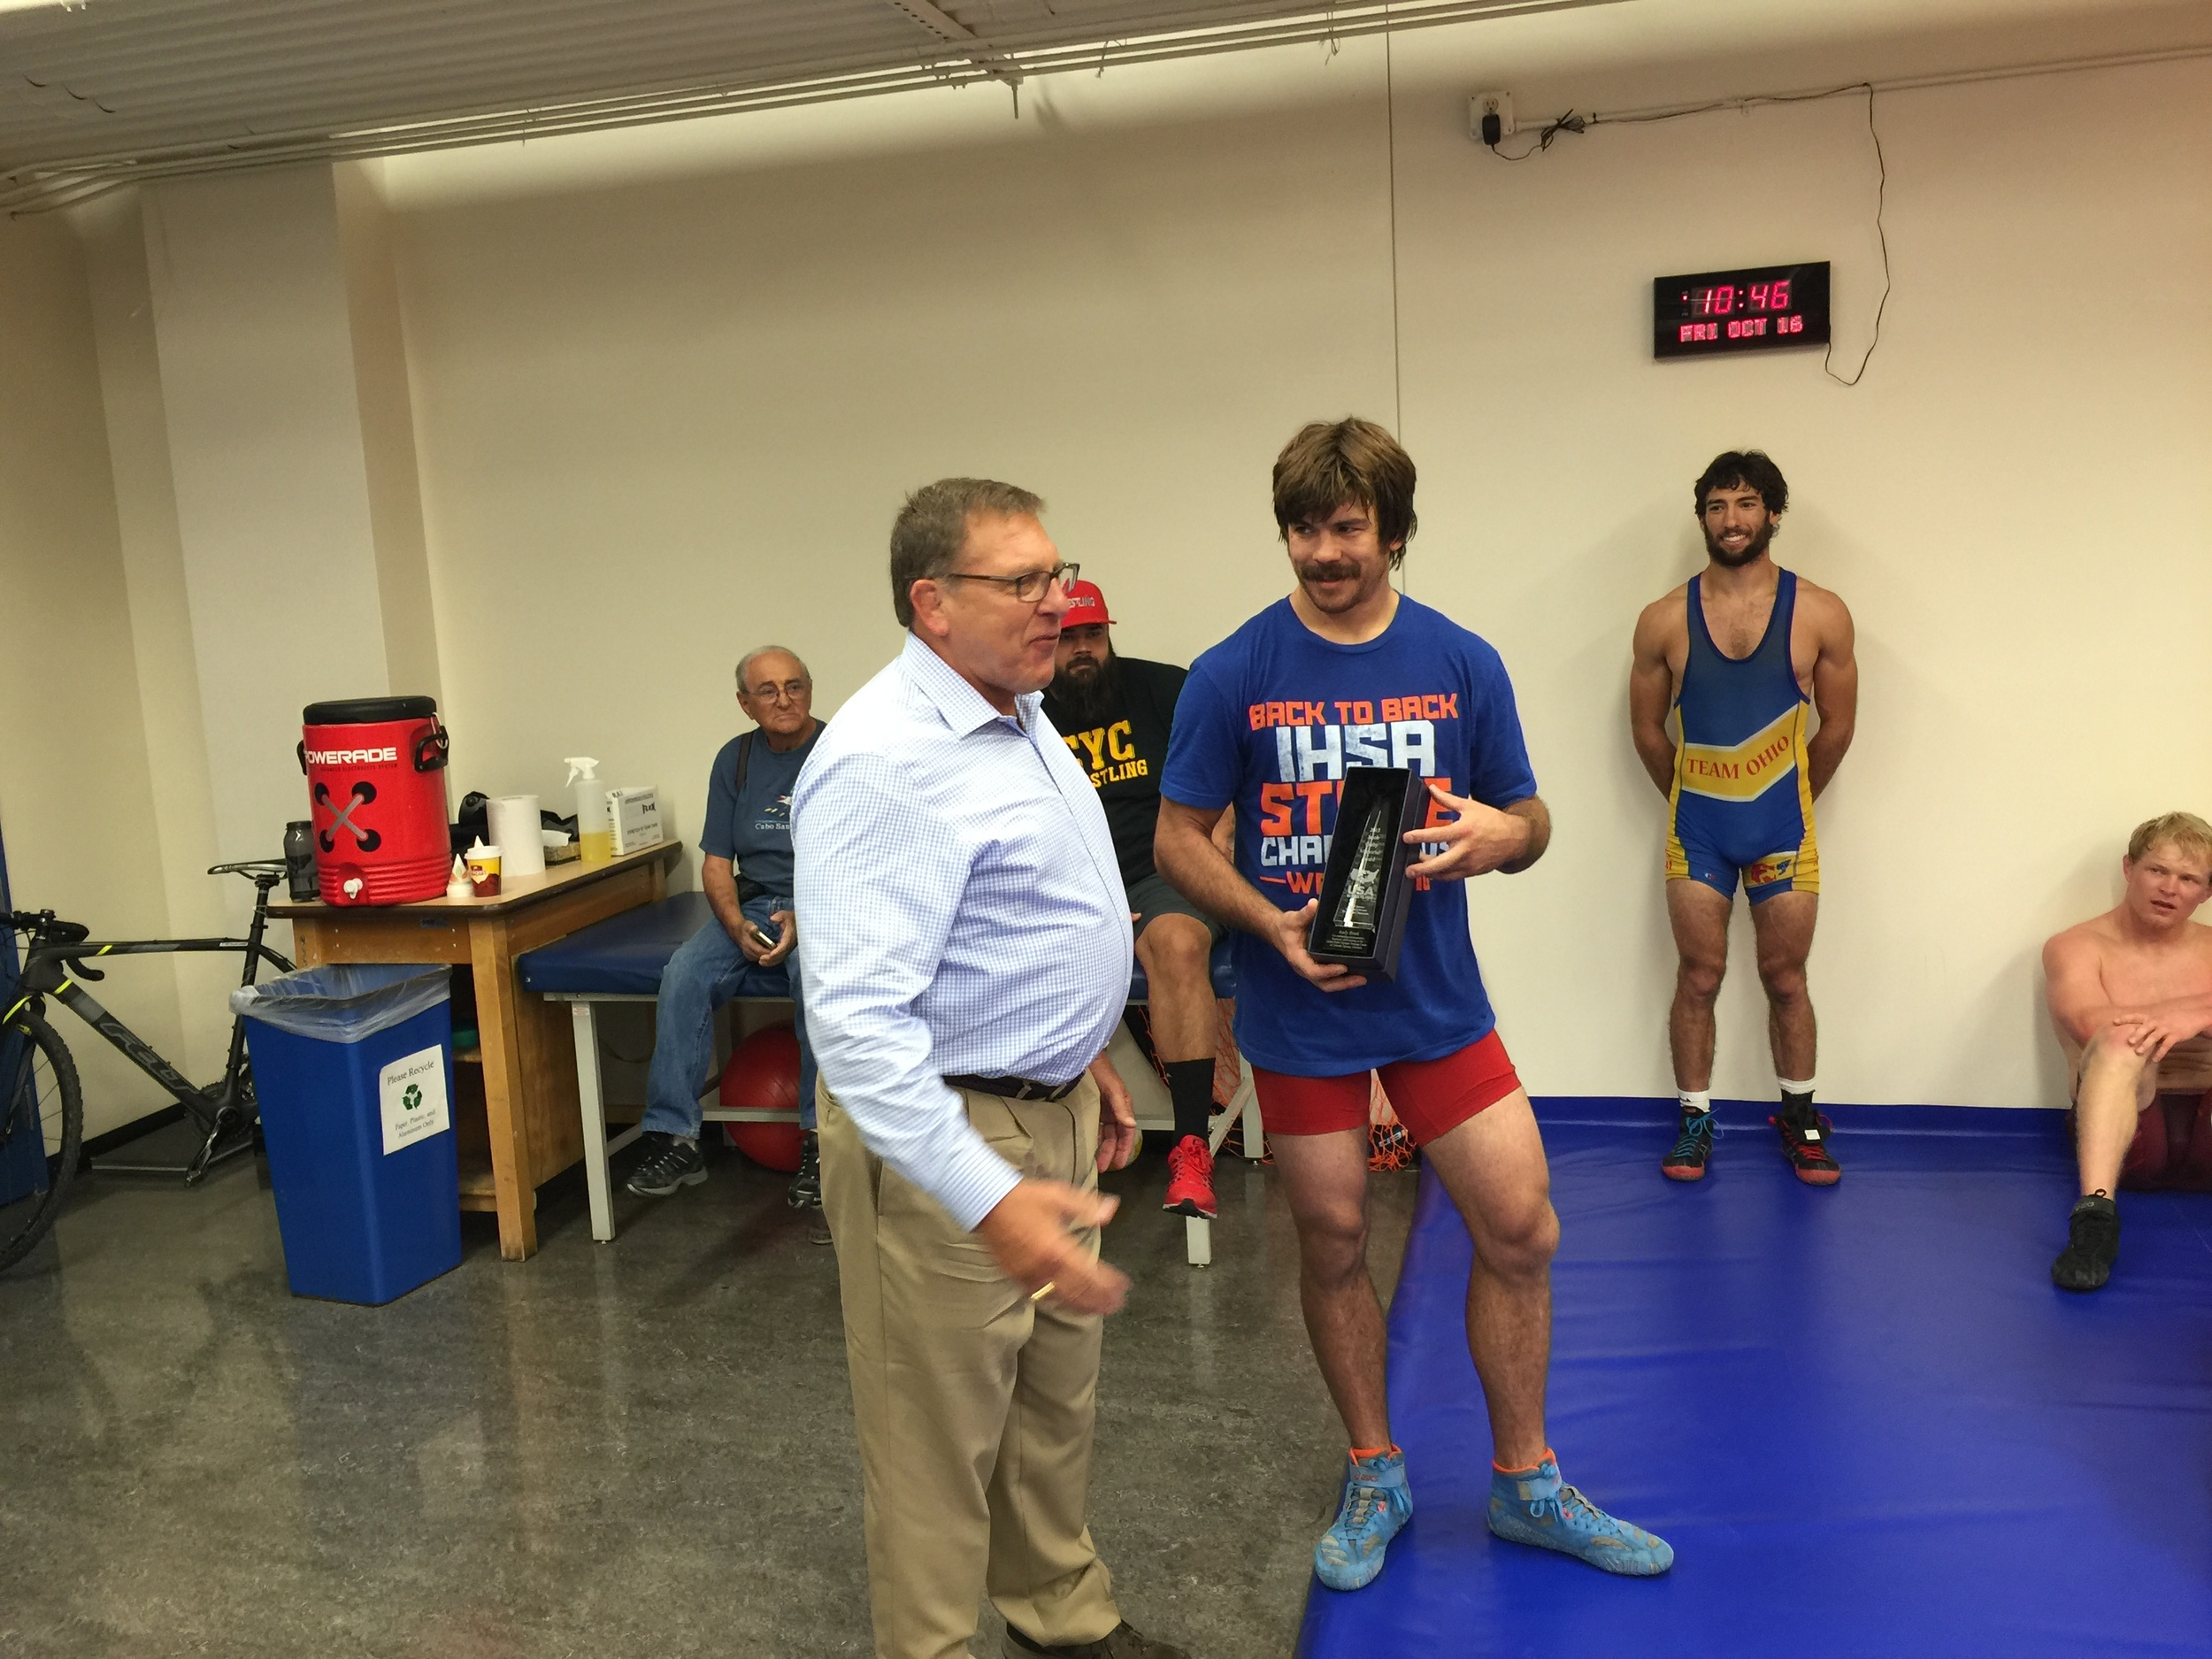 Dr David Curby presenting the Jacob Curby award to Andy Bisek at the OTC in Colorado Springs.